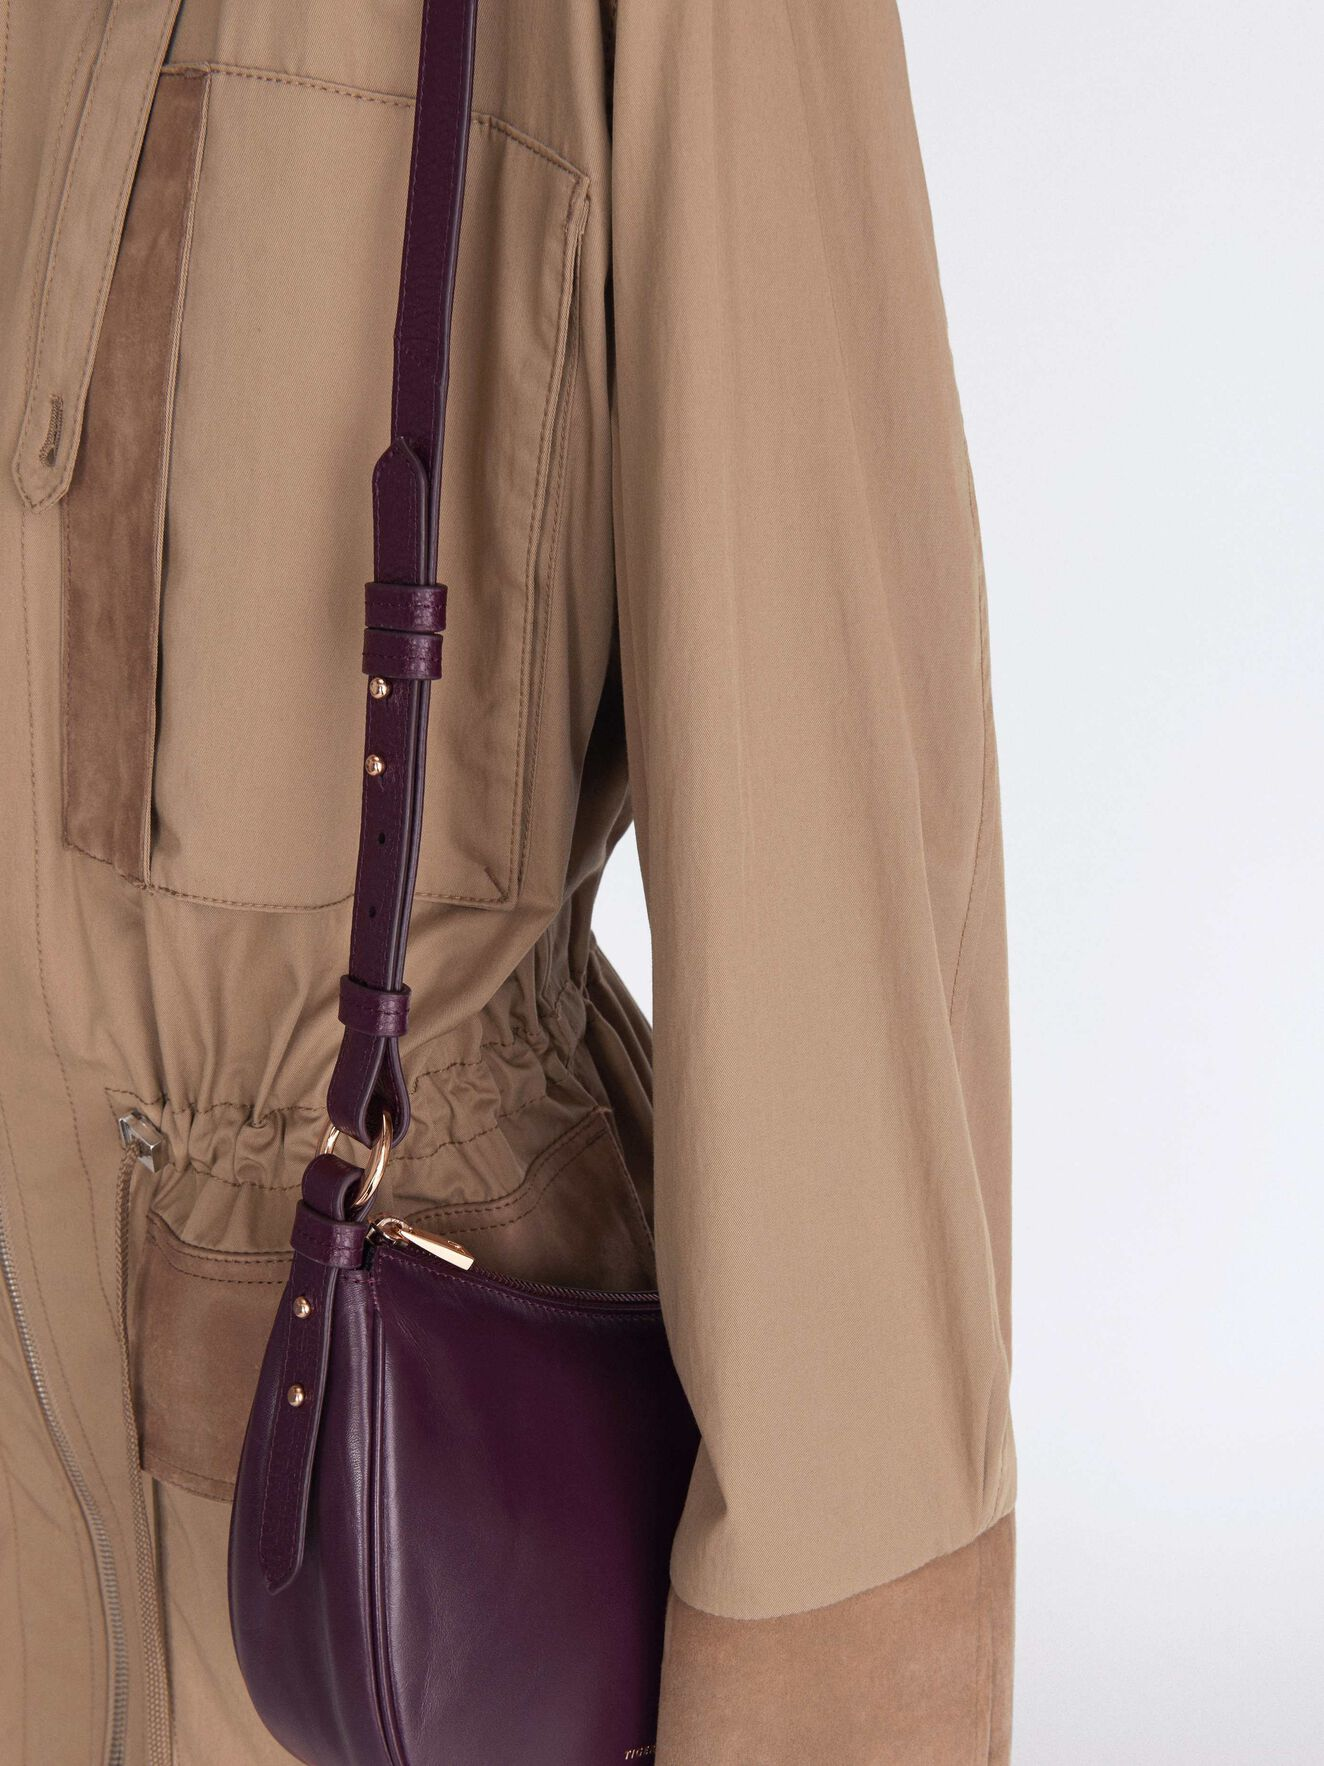 Borziama Bag in Noon Plum from Tiger of Sweden